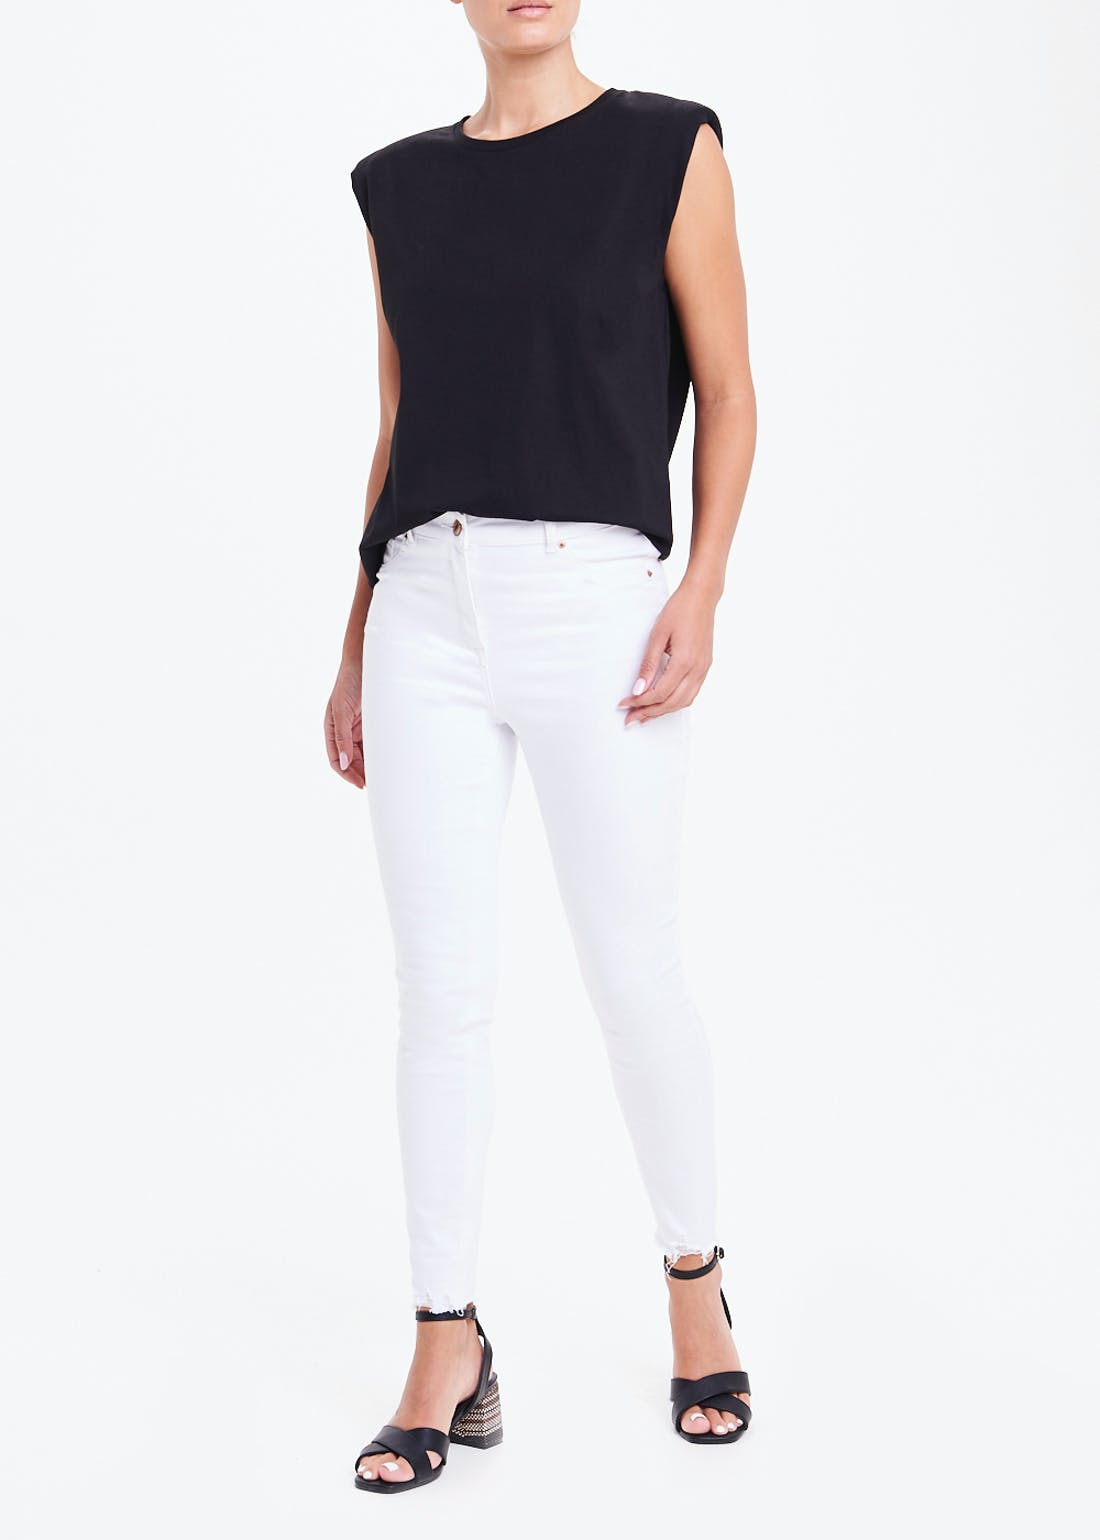 Sleeveless Shoulder Pad T-Shirt